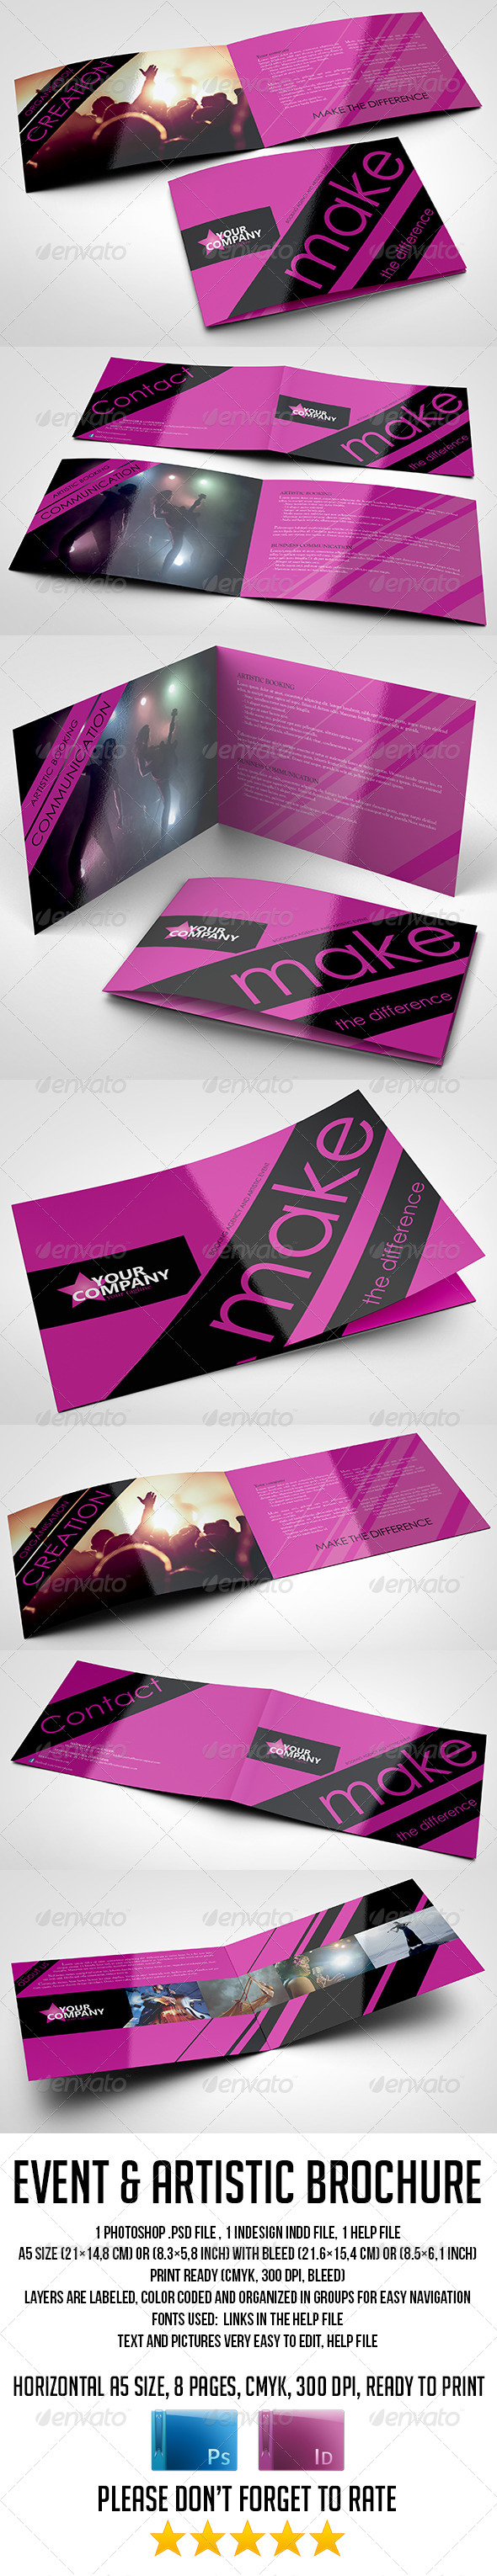 A5 8 Pages Event and Artistic Brochure - Corporate Brochures